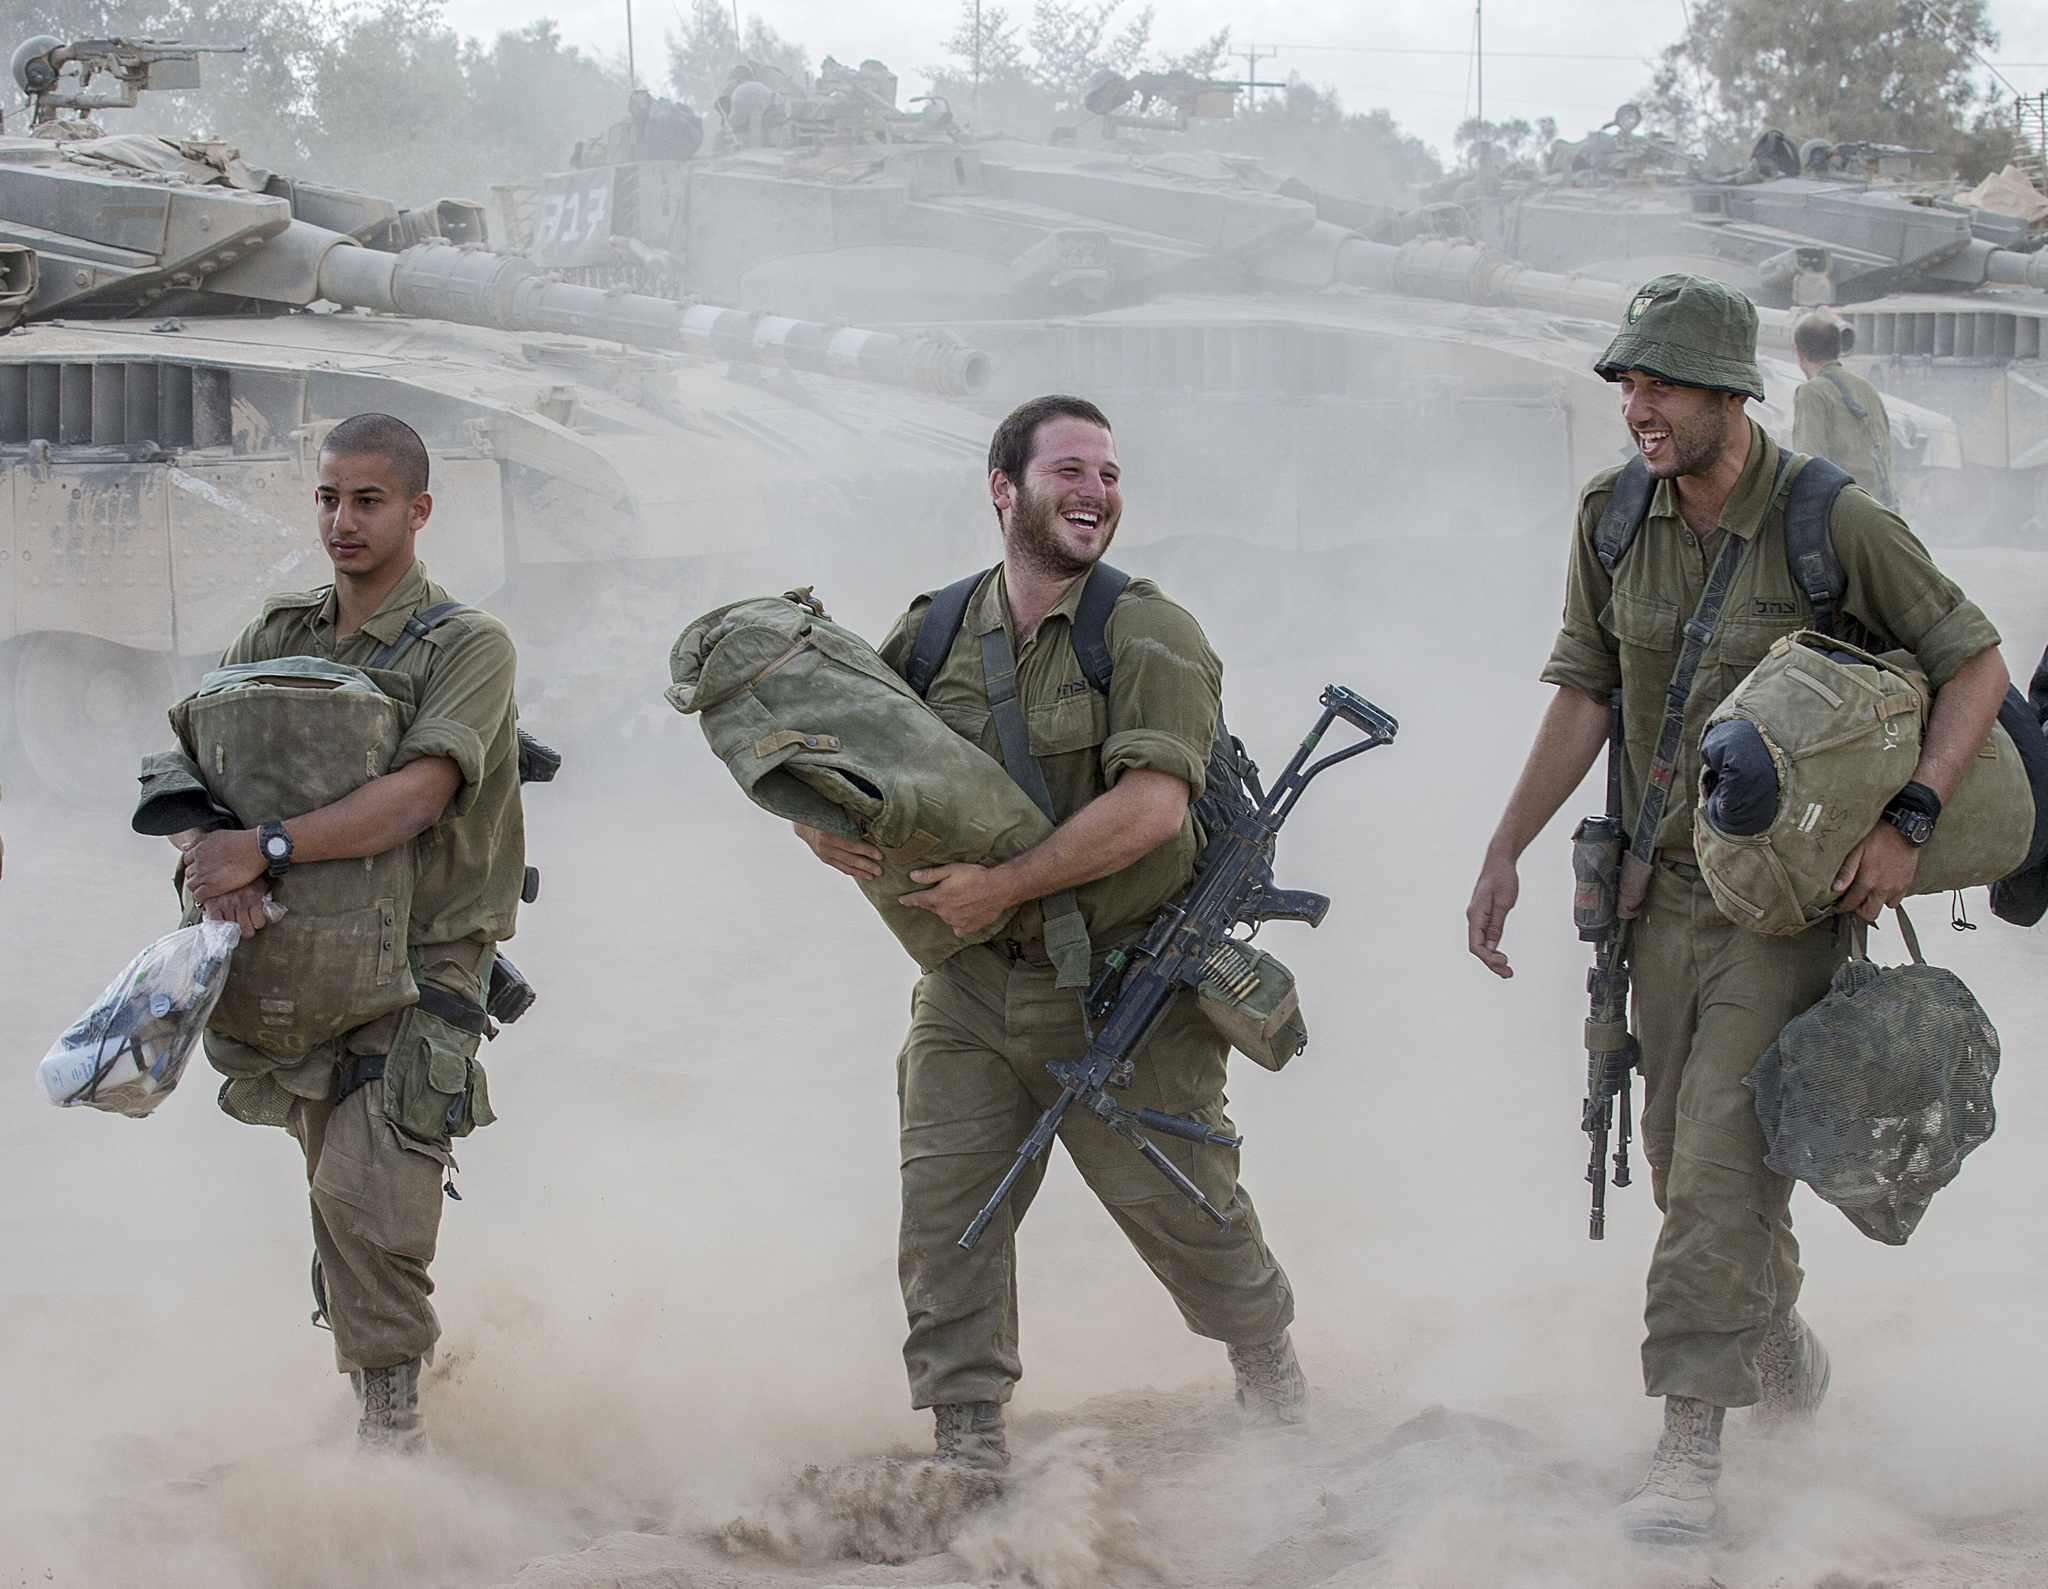 Israeli soldiers make their to rest at a...Israeli soldiers make their to rest at an army deployment area near Israel's border with the Gaza Strip, on August 4, 2014. An eight-year-old girl was killed and 30 people wounded in a strike on the beachfront Shati refugee camp in Gaza City just minutes into an Israeli-declared truce, medics said.  AFP PHOTO / JACK GUEZJACK GUEZ/AFP/Getty Images